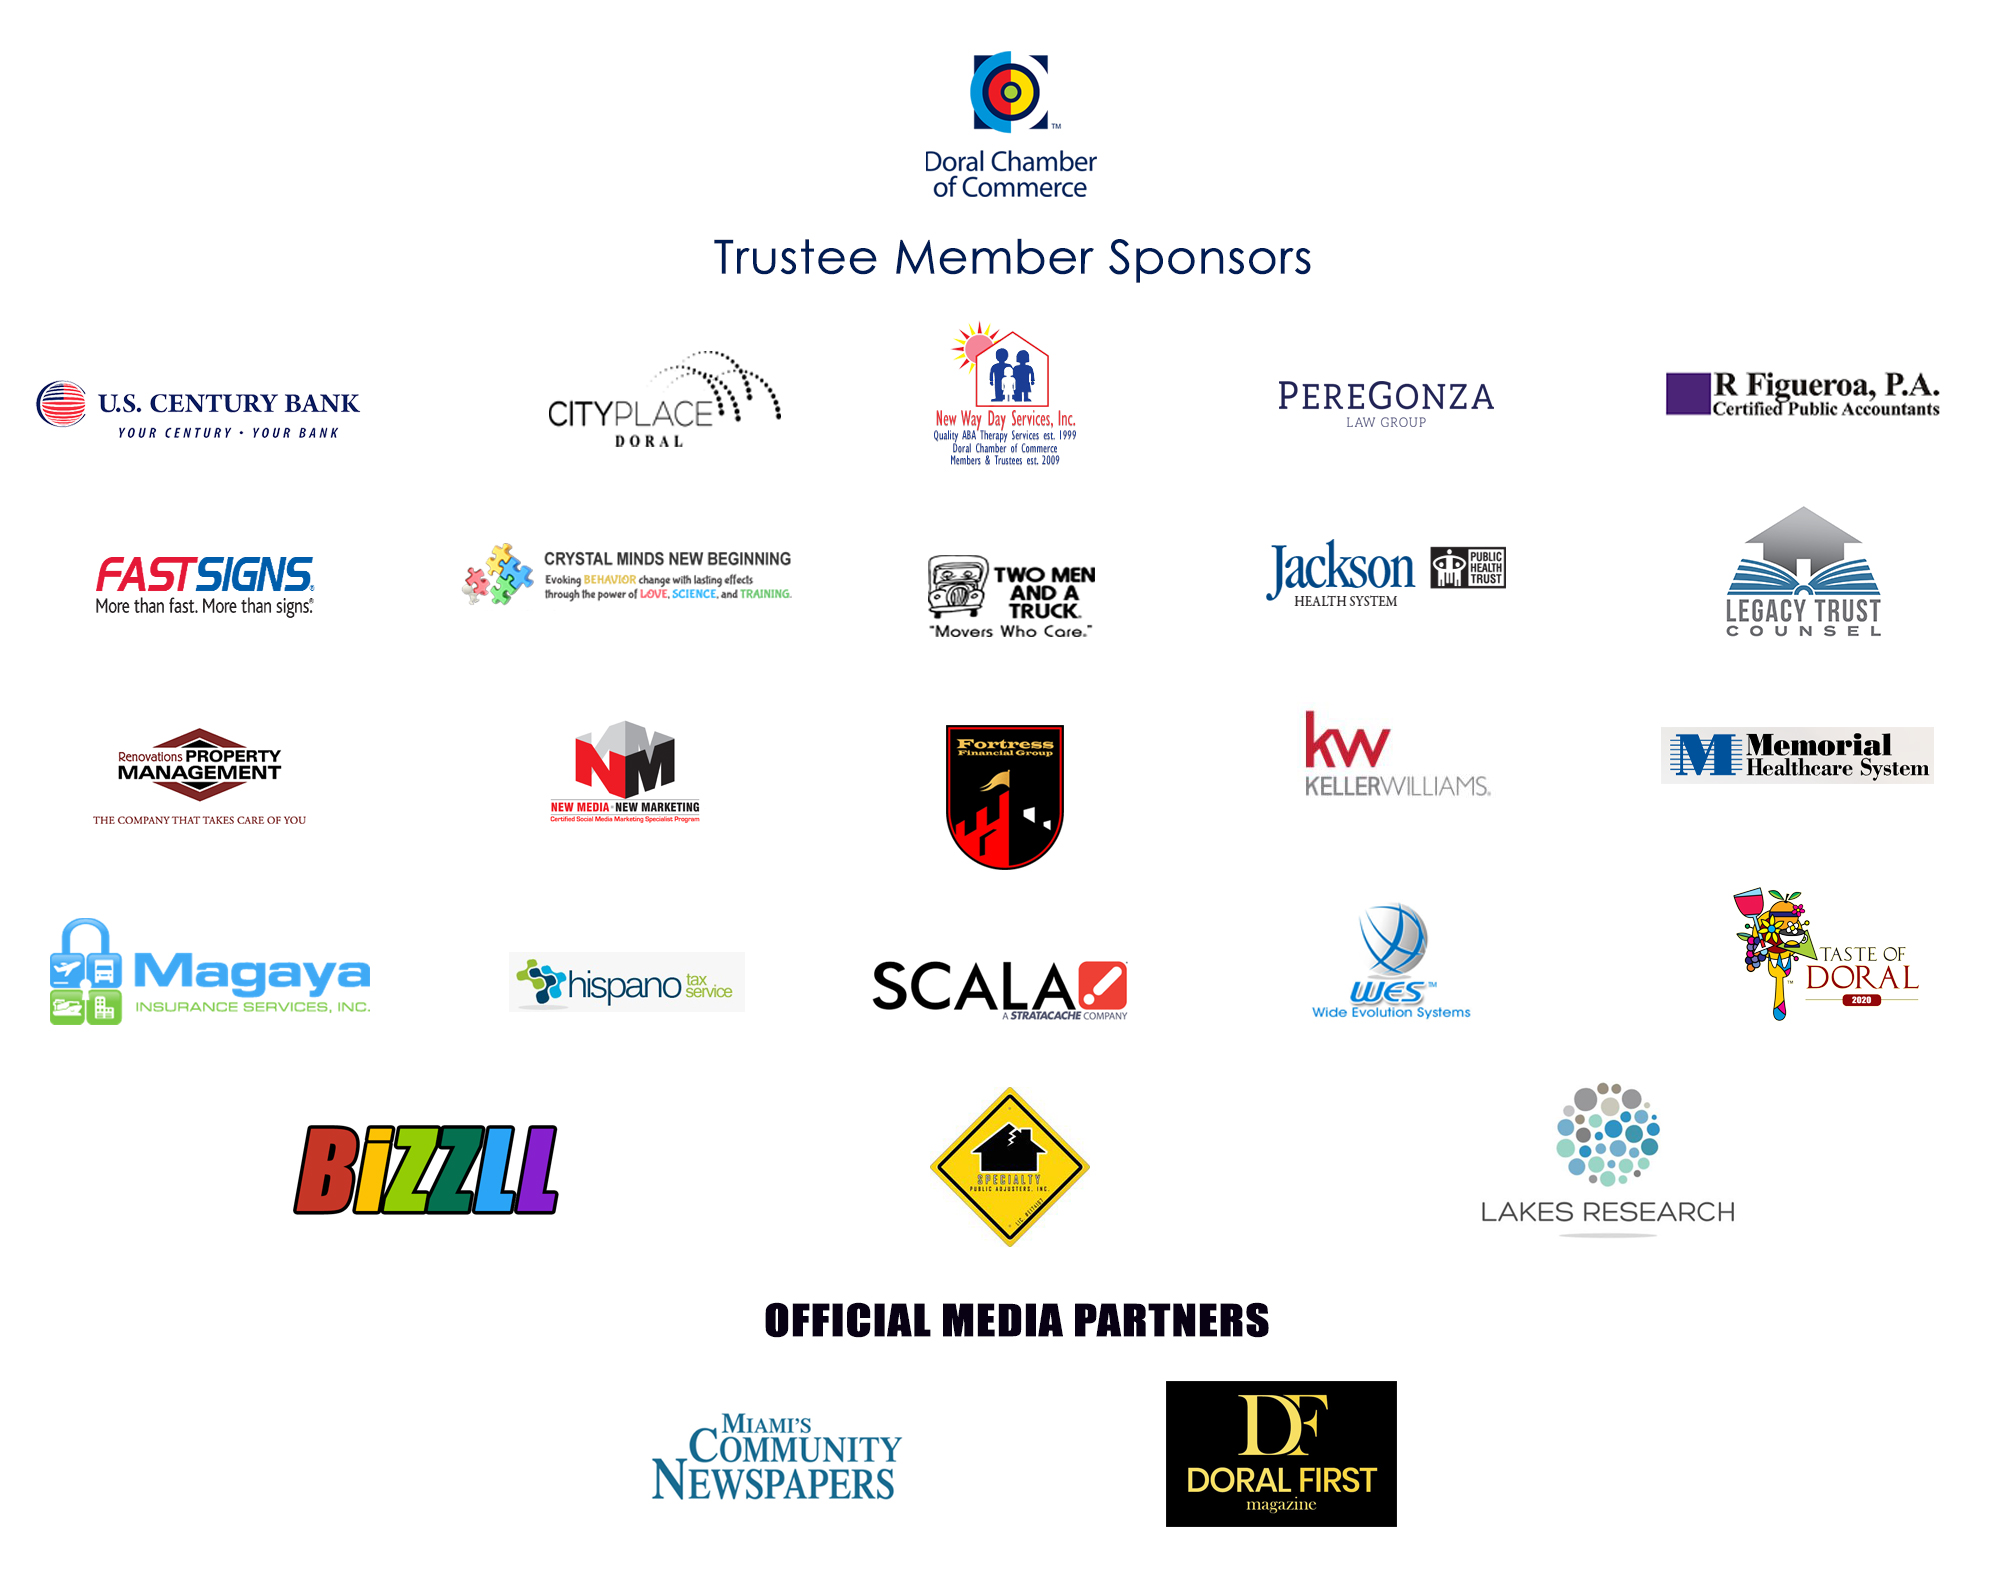 Doral Chamber of Commerce Trustee Members. The Best of Doral Businesses.